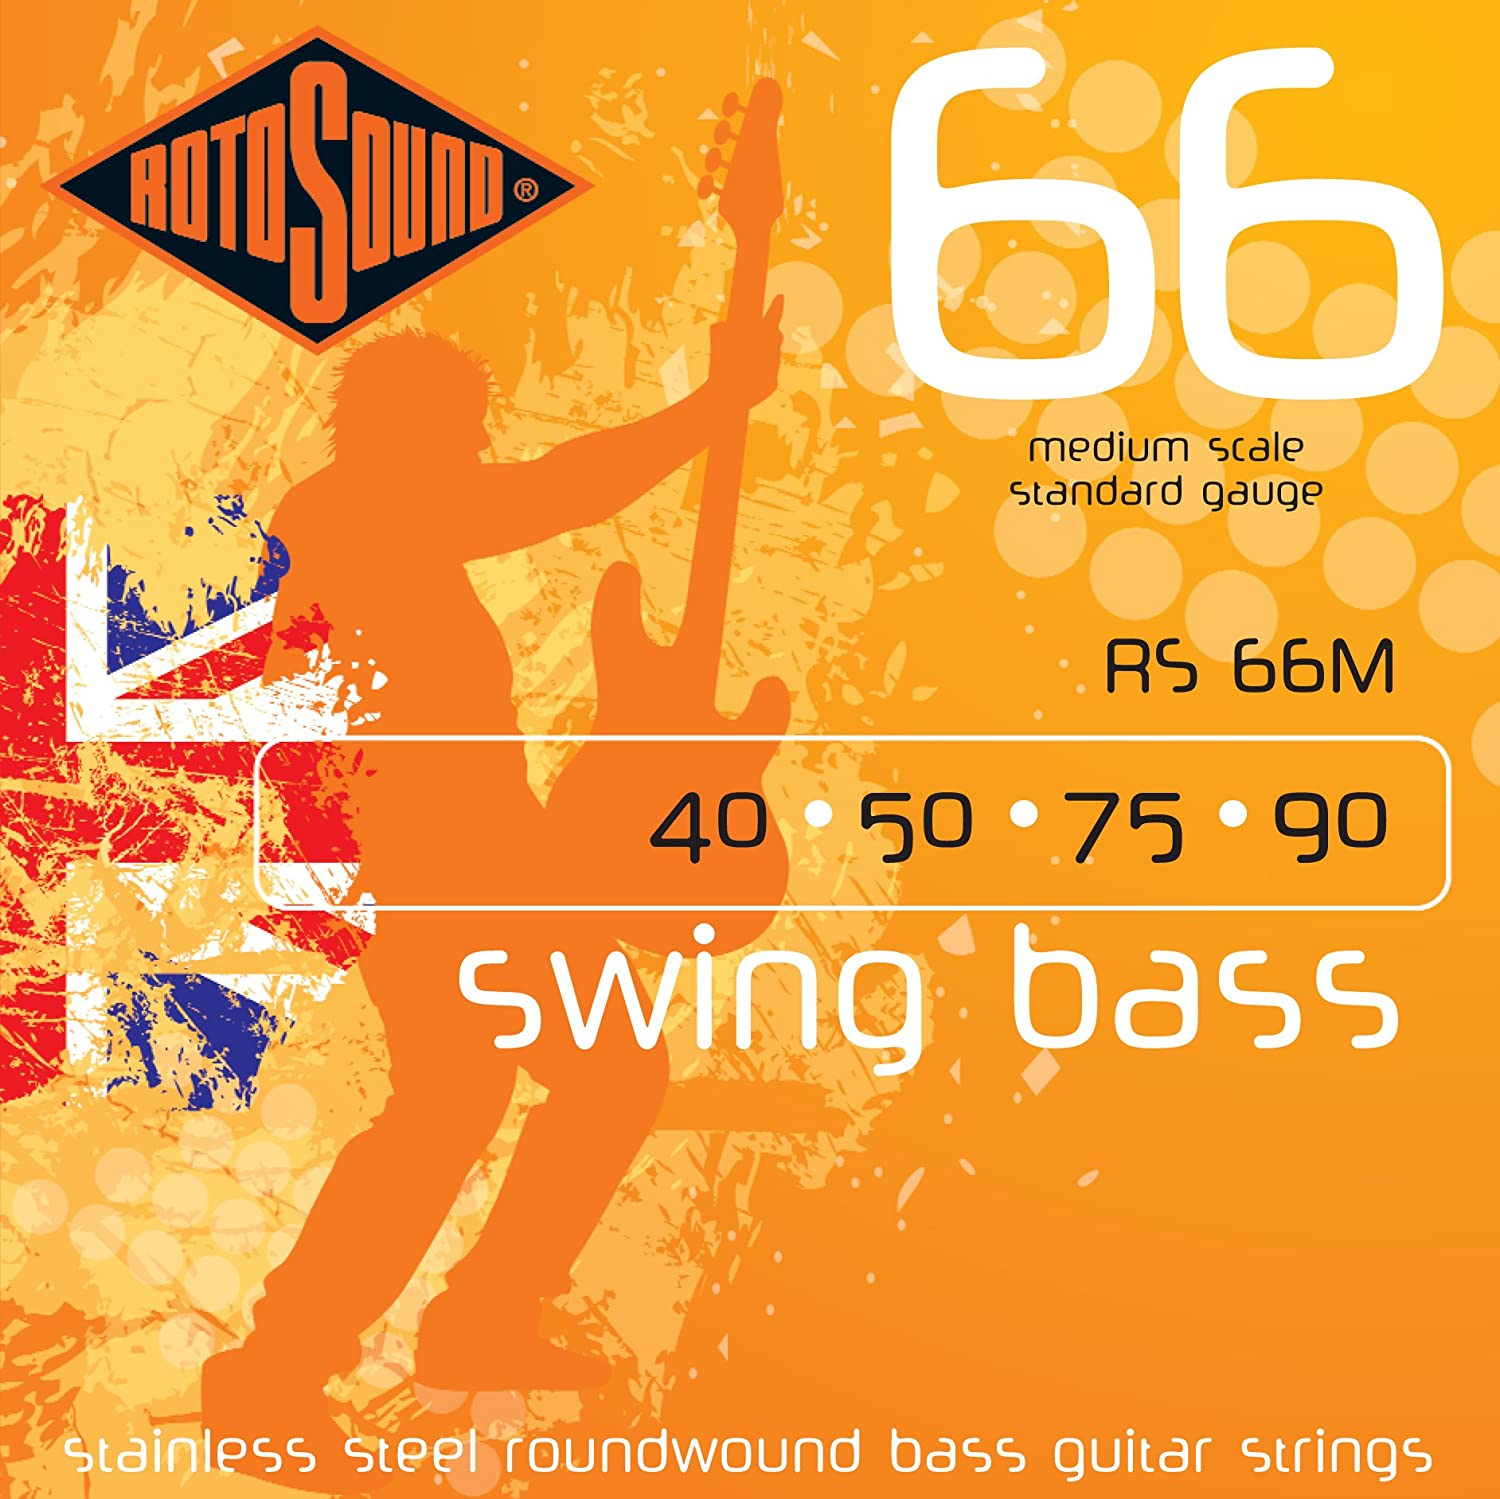 Rotosond Max 61% OFF Stainless Steel Roundwound Our shop OFFers the best service Bass Guitar Strings